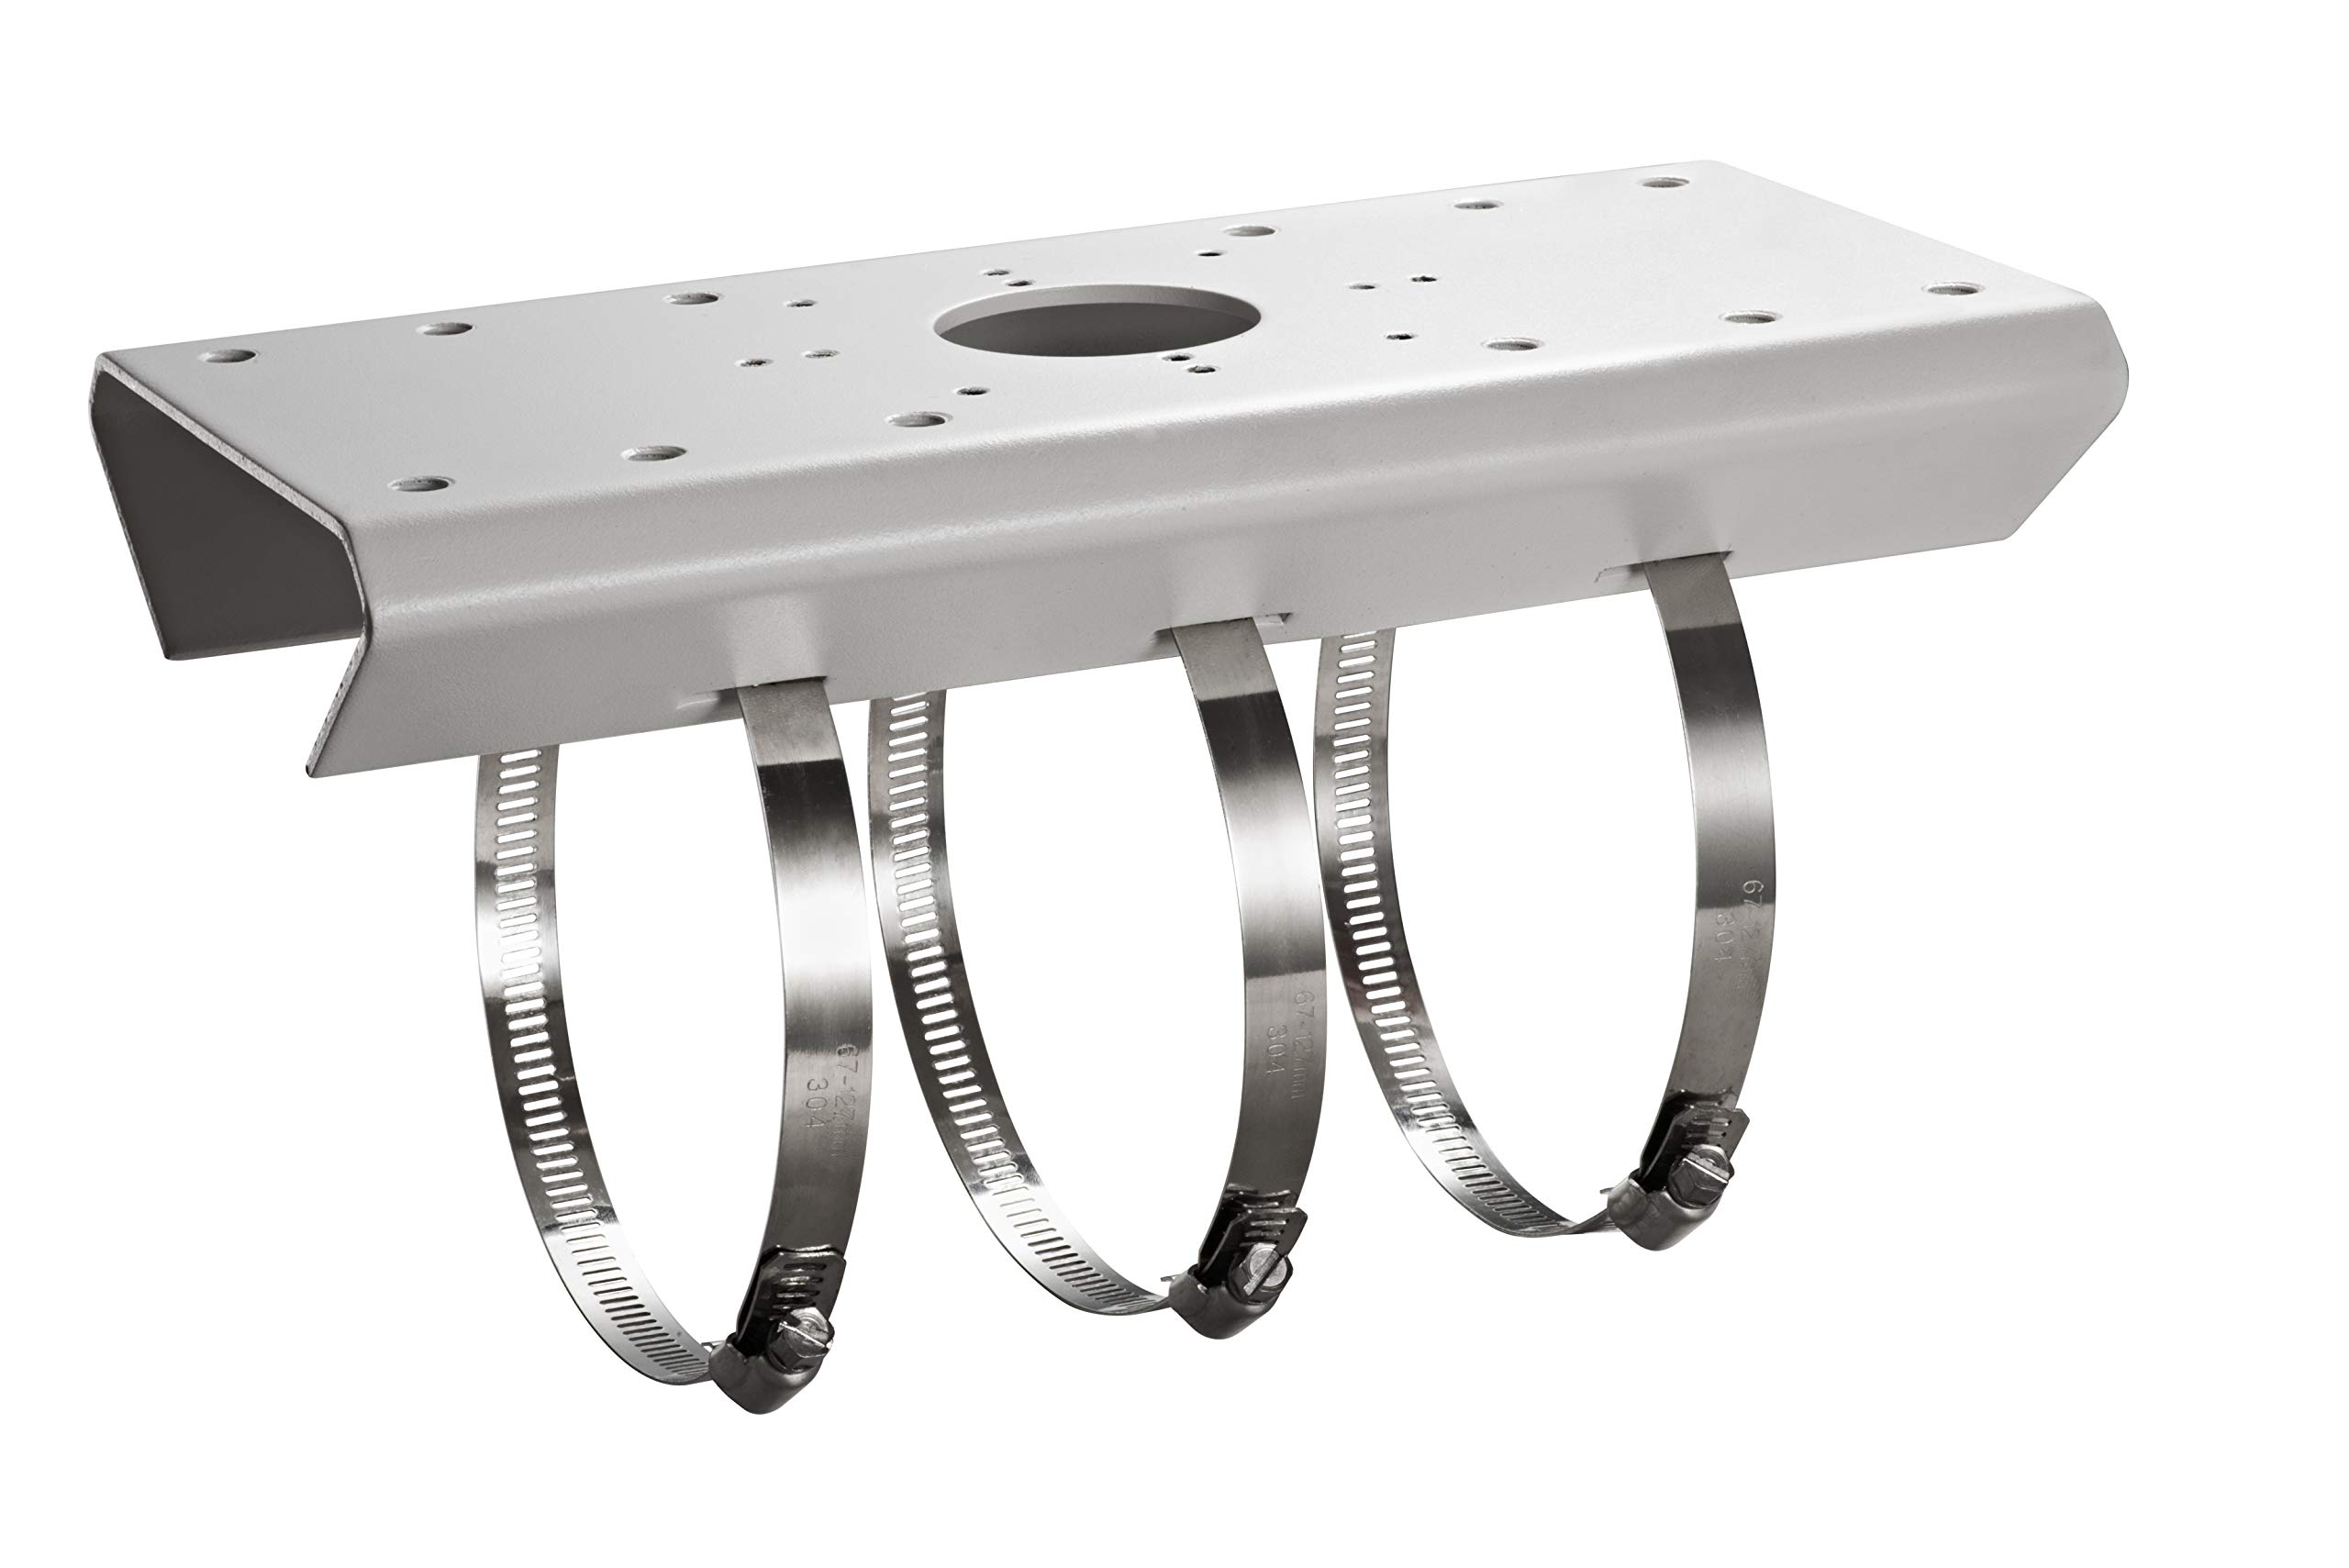 PM DS-1275ZJ Universal Pole Mount Adapter for Most Hikvision Wall Mounts and Cameras - 4 Pack by KENUCO (Image #3)